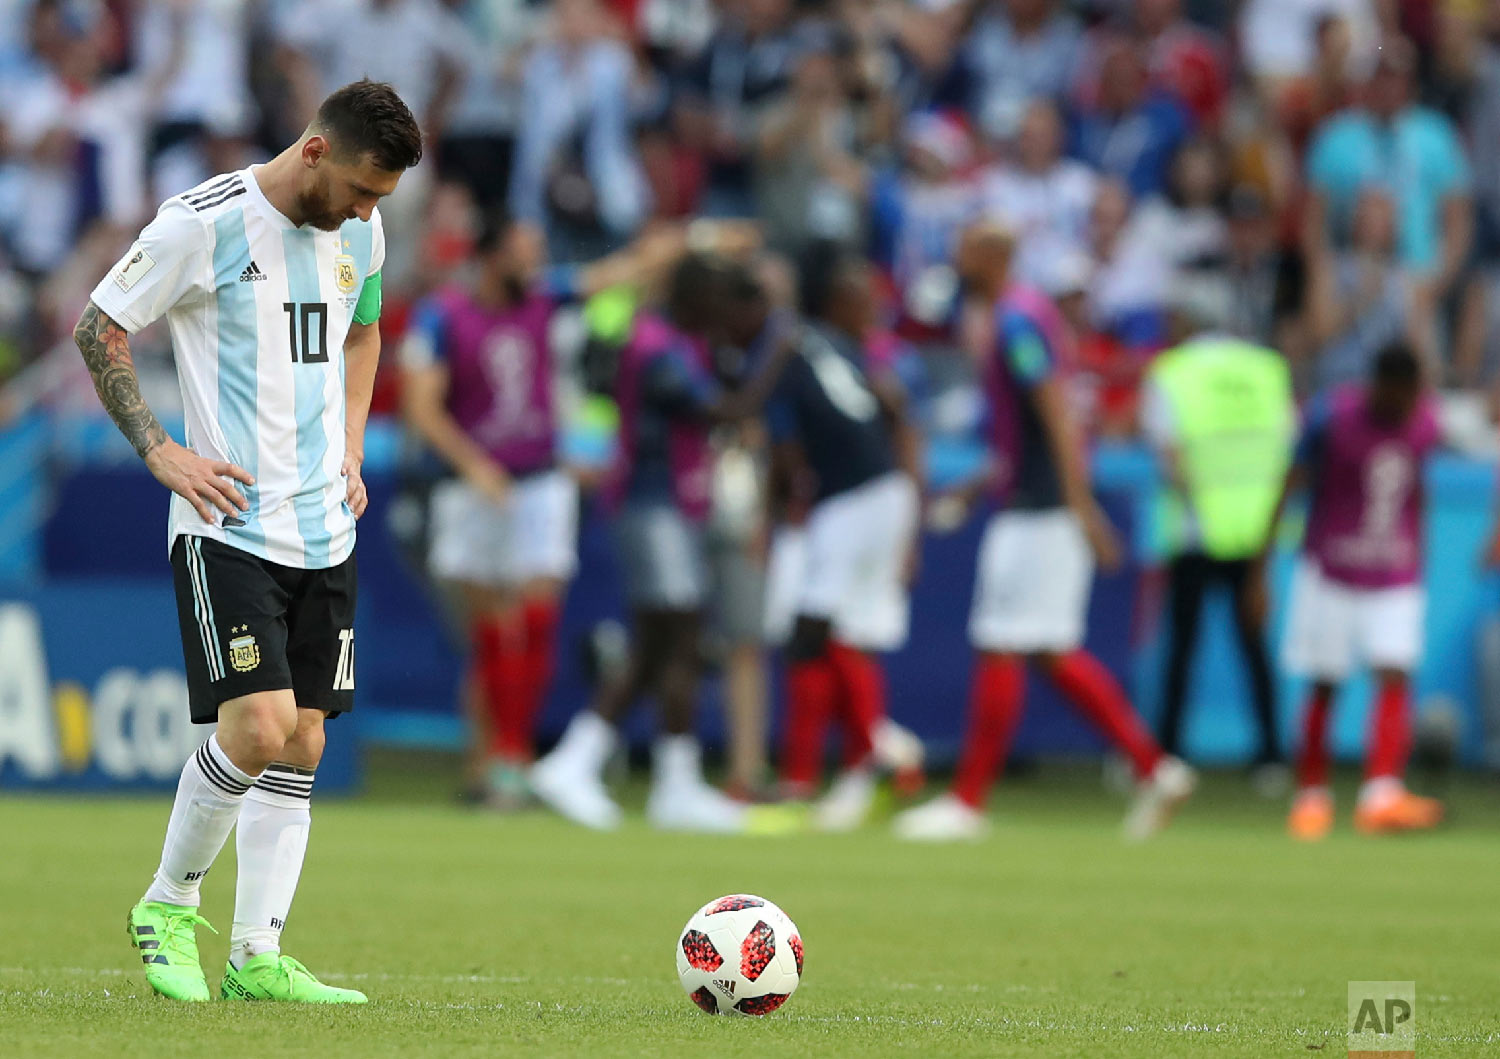 Argentina's Lionel Messi reacts after France took the lead with a third goal by Kylian Mbappe during the round of 16 match between France and Argentina at the 2018 soccer World Cup at the Kazan Arena in Kazan, Russia, on June 30, 2018. (AP Photo/Thanassis Stavrakis)